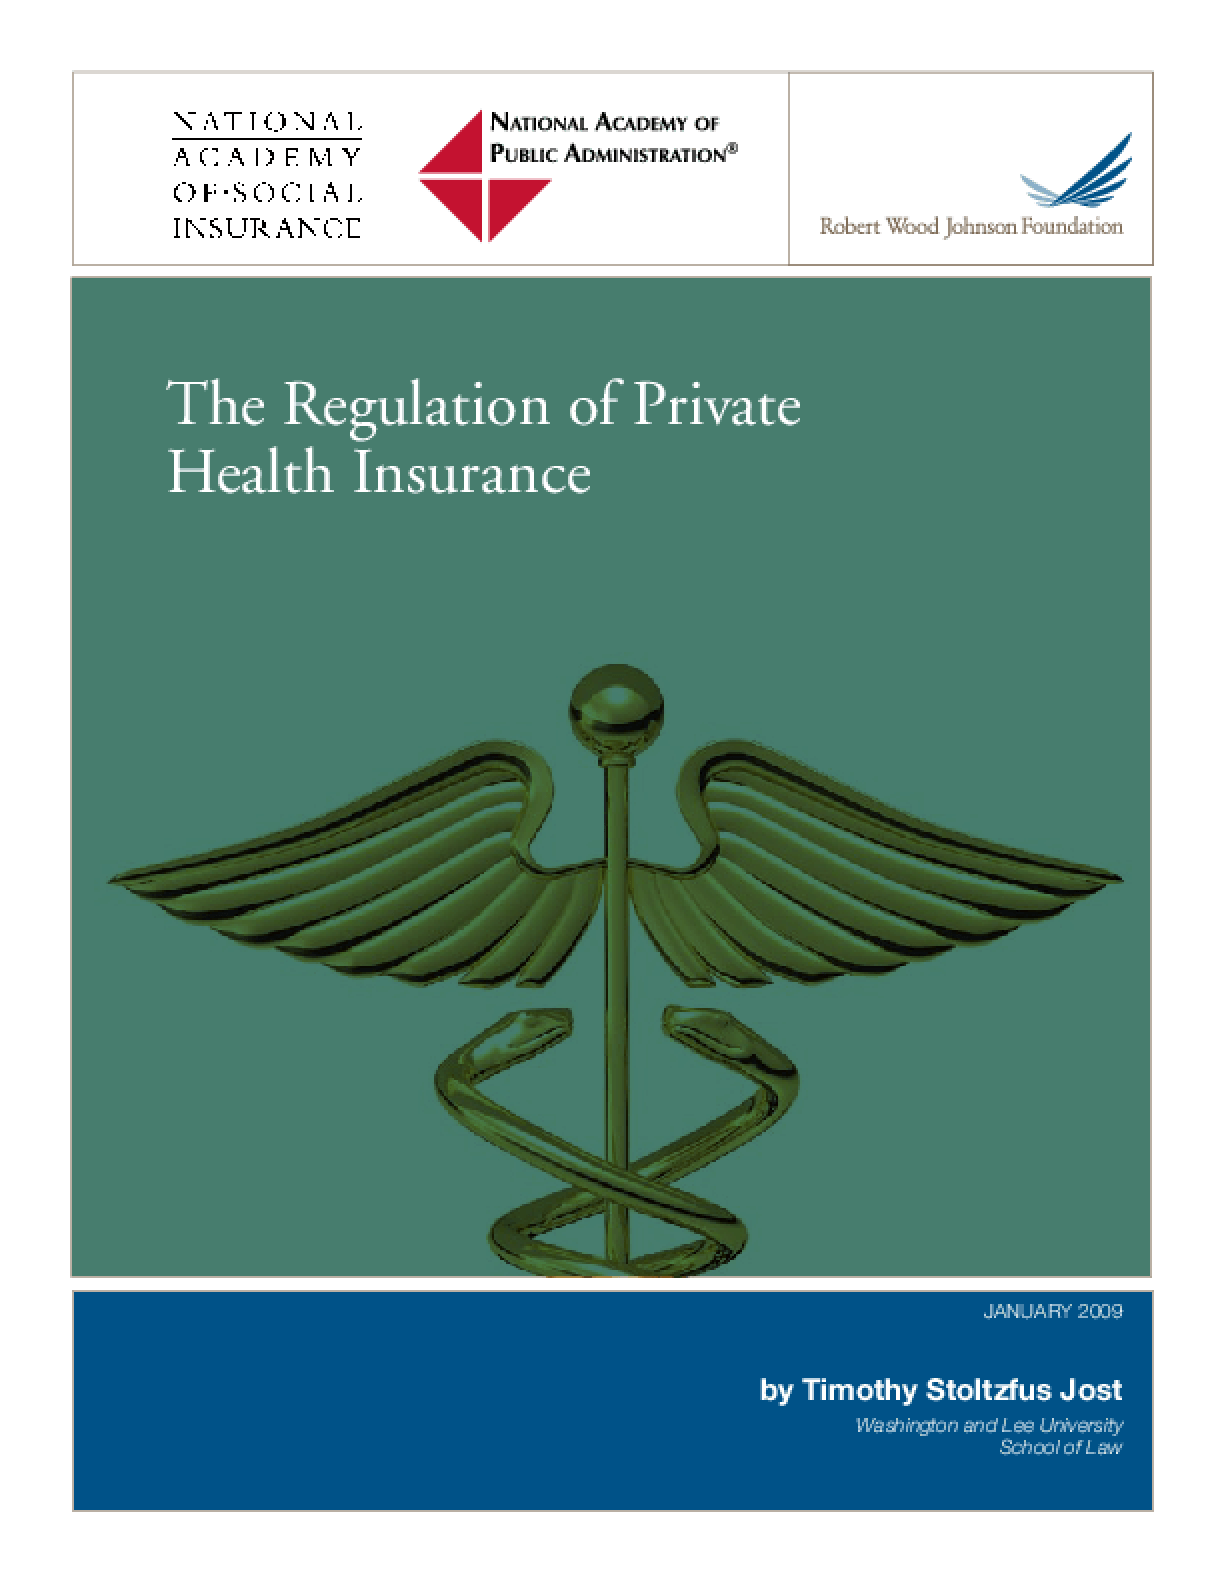 The Regulation of Private Health Insurance